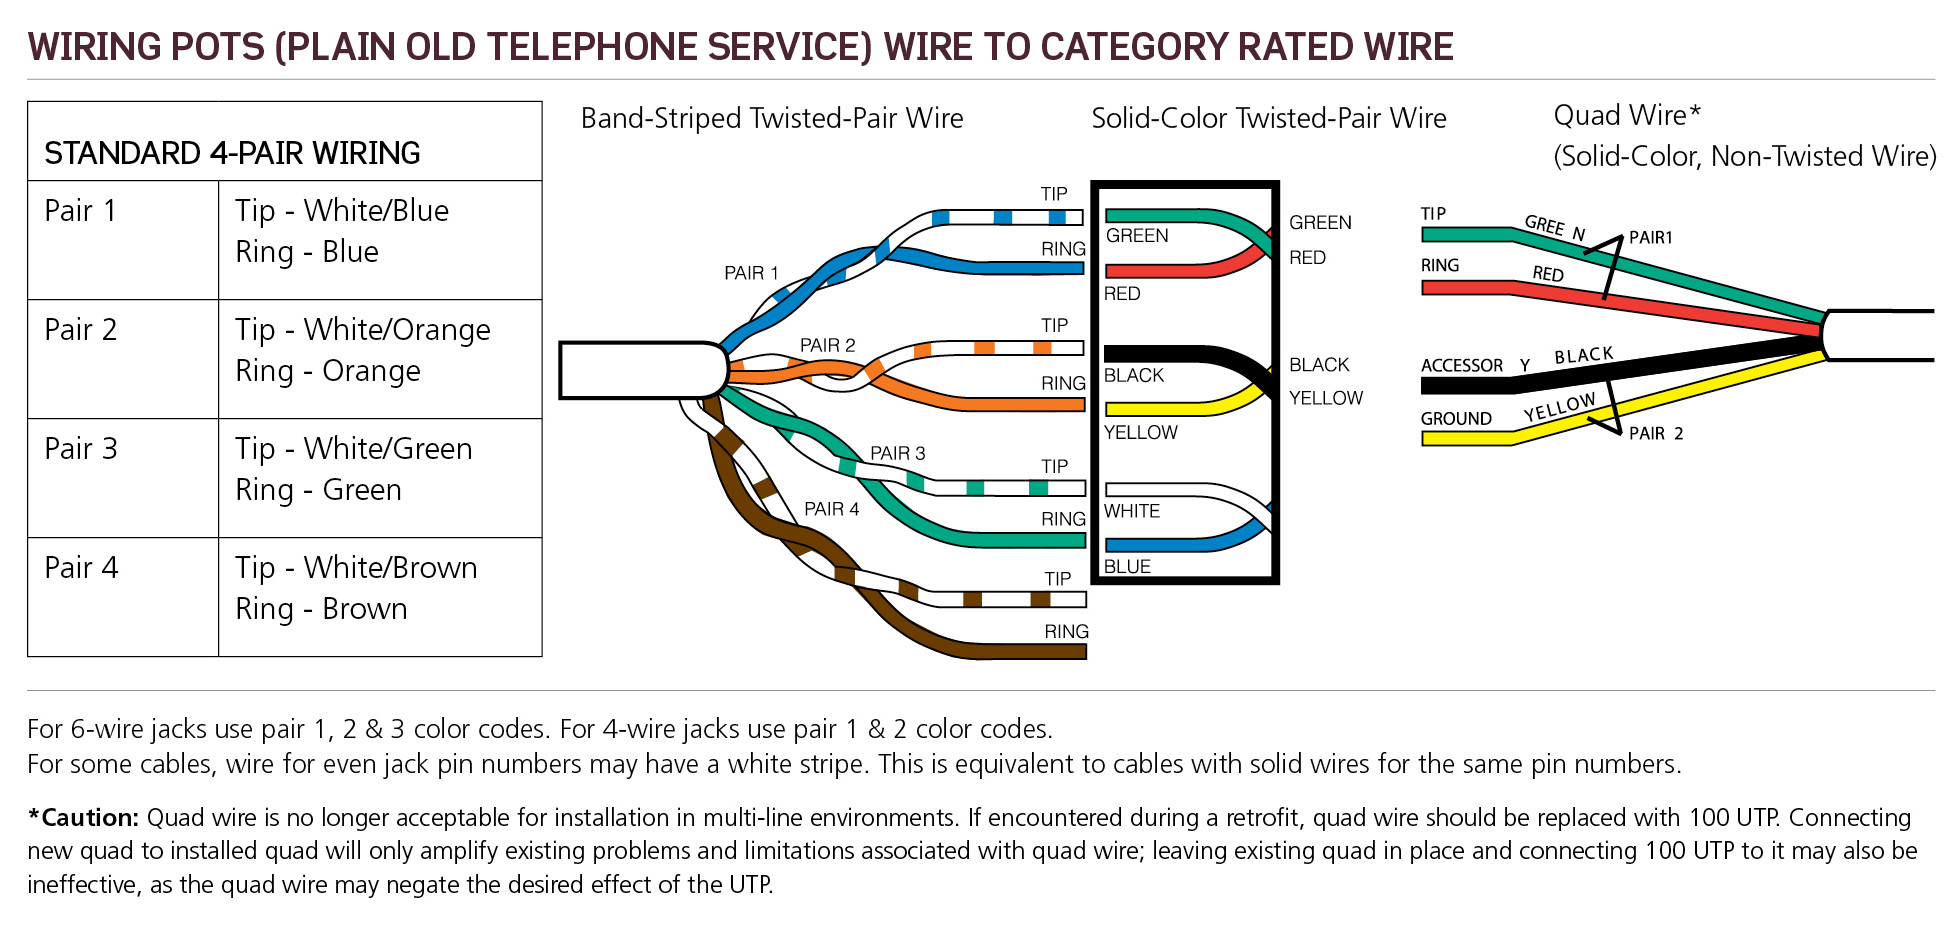 medium resolution of pots plain old telephone service wiring leviton made easy blog garage wiring standard are you staring